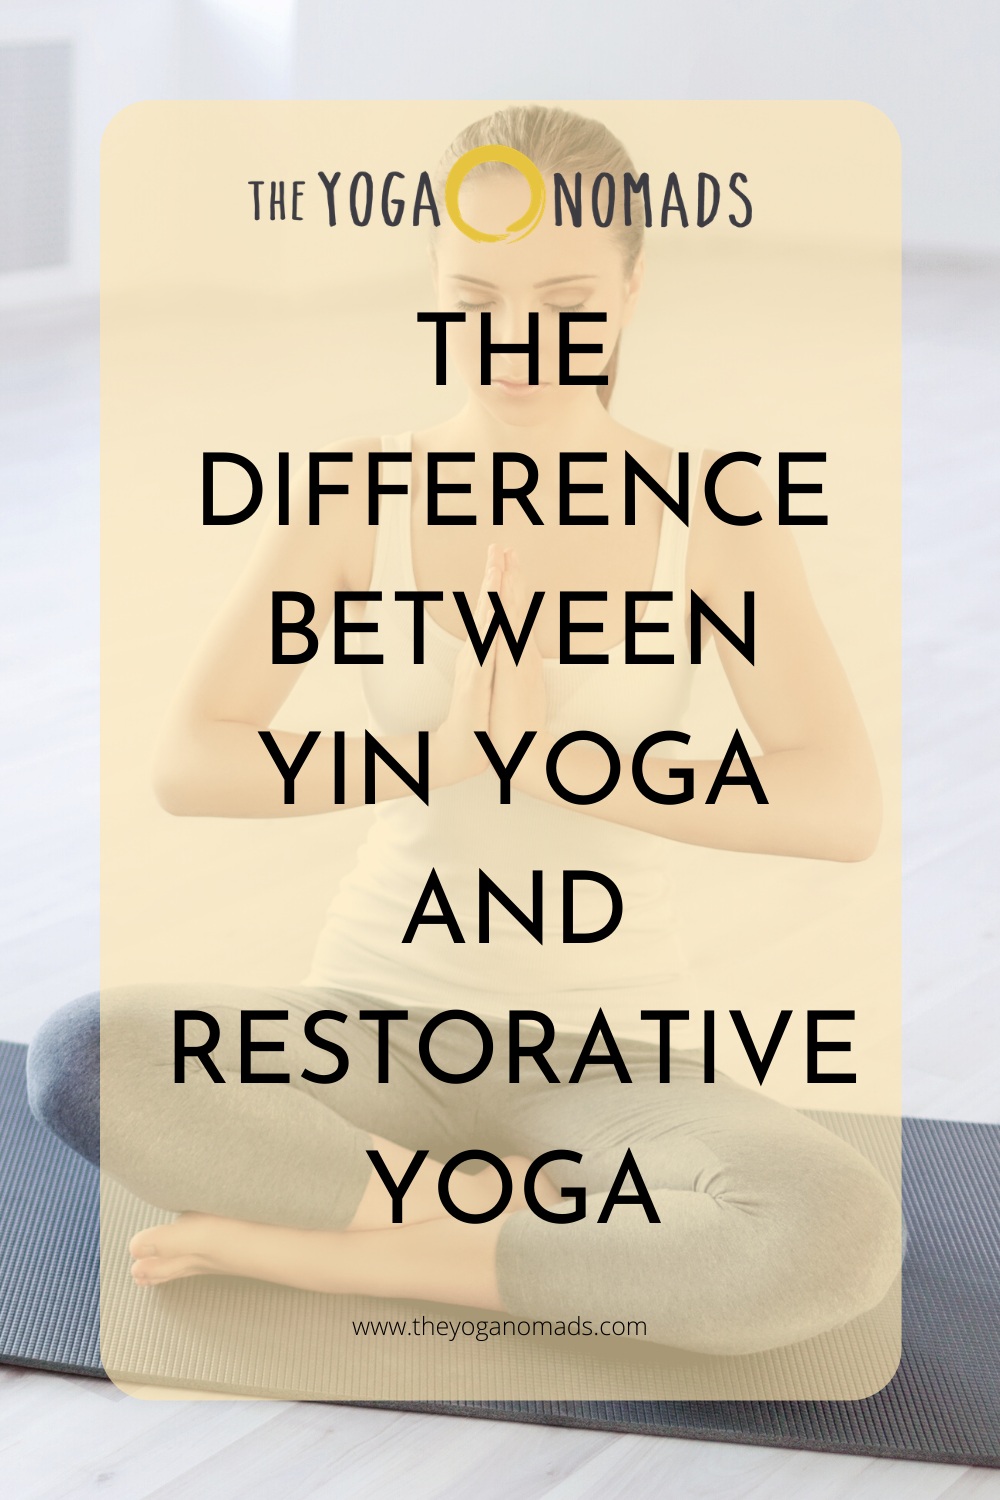 The Difference Between Yin Yoga and Restorative Yoga